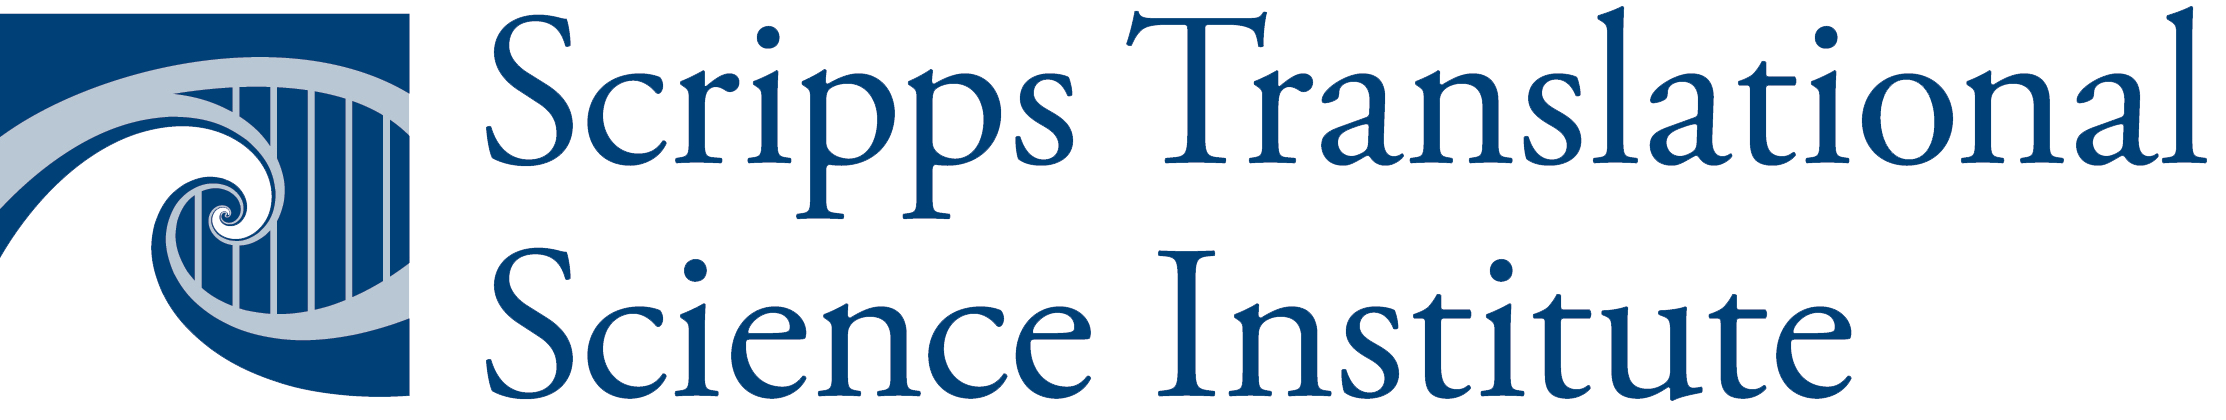 Scripps Translational Science Institute